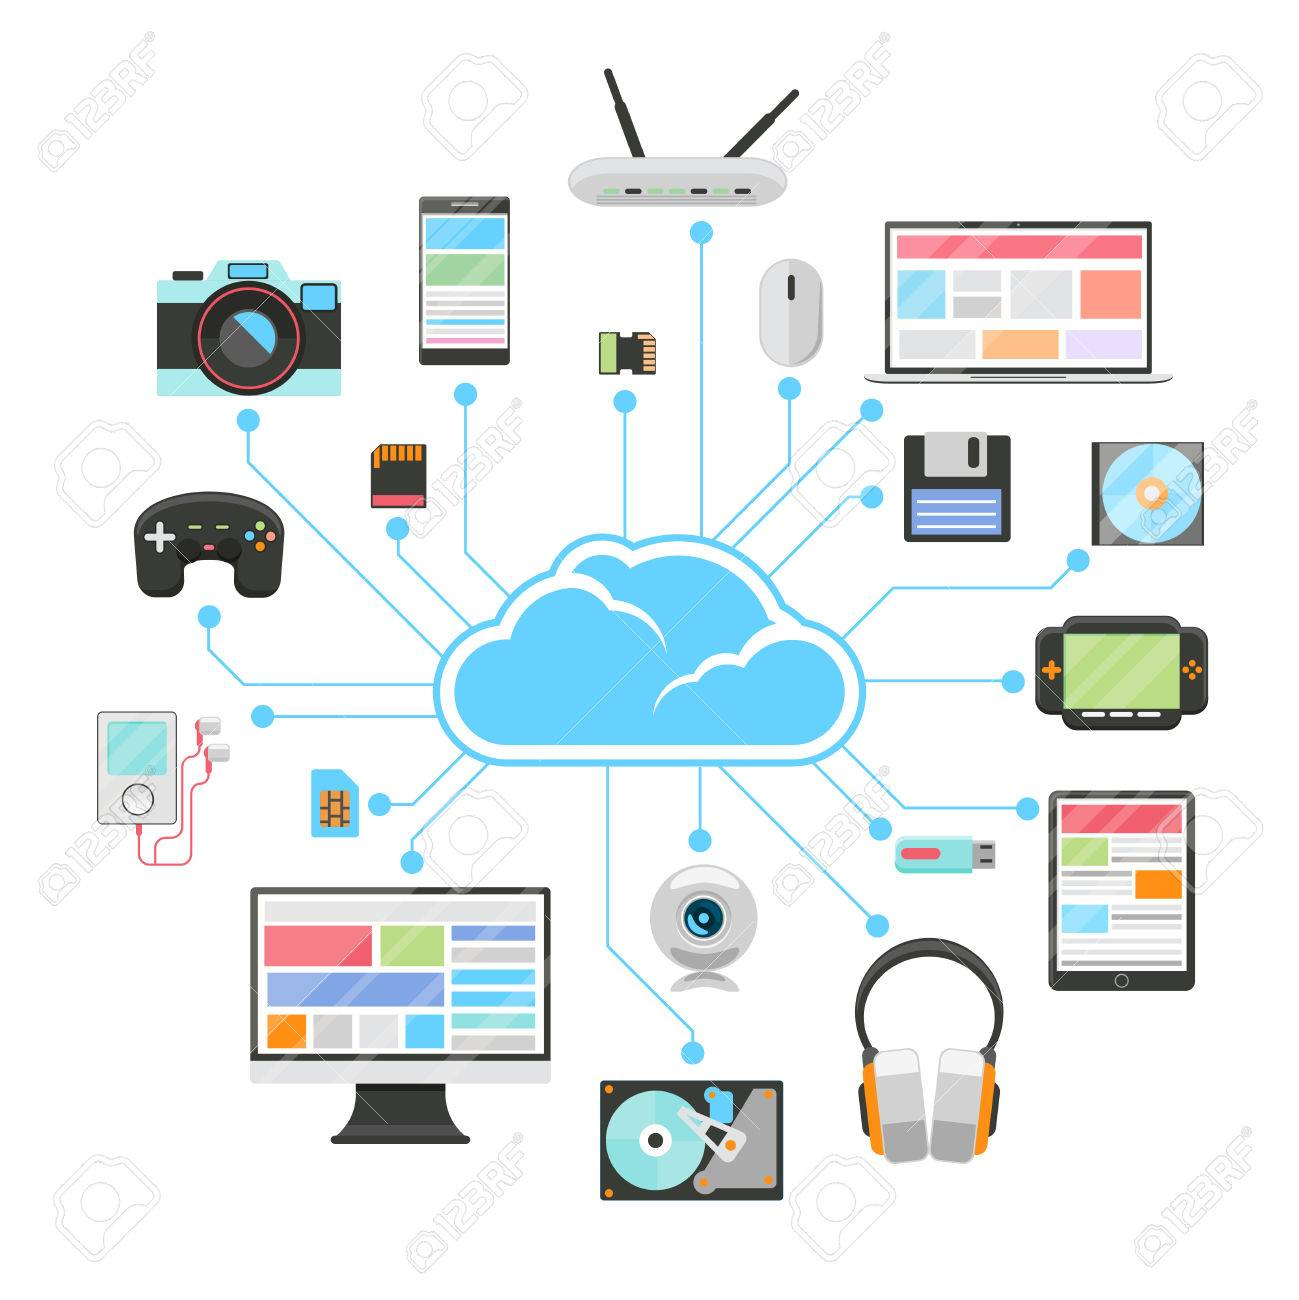 Cloud server and sync of electronic devices royalty free cliparts banco de imagens cloud server and sync of electronic devices ccuart Images